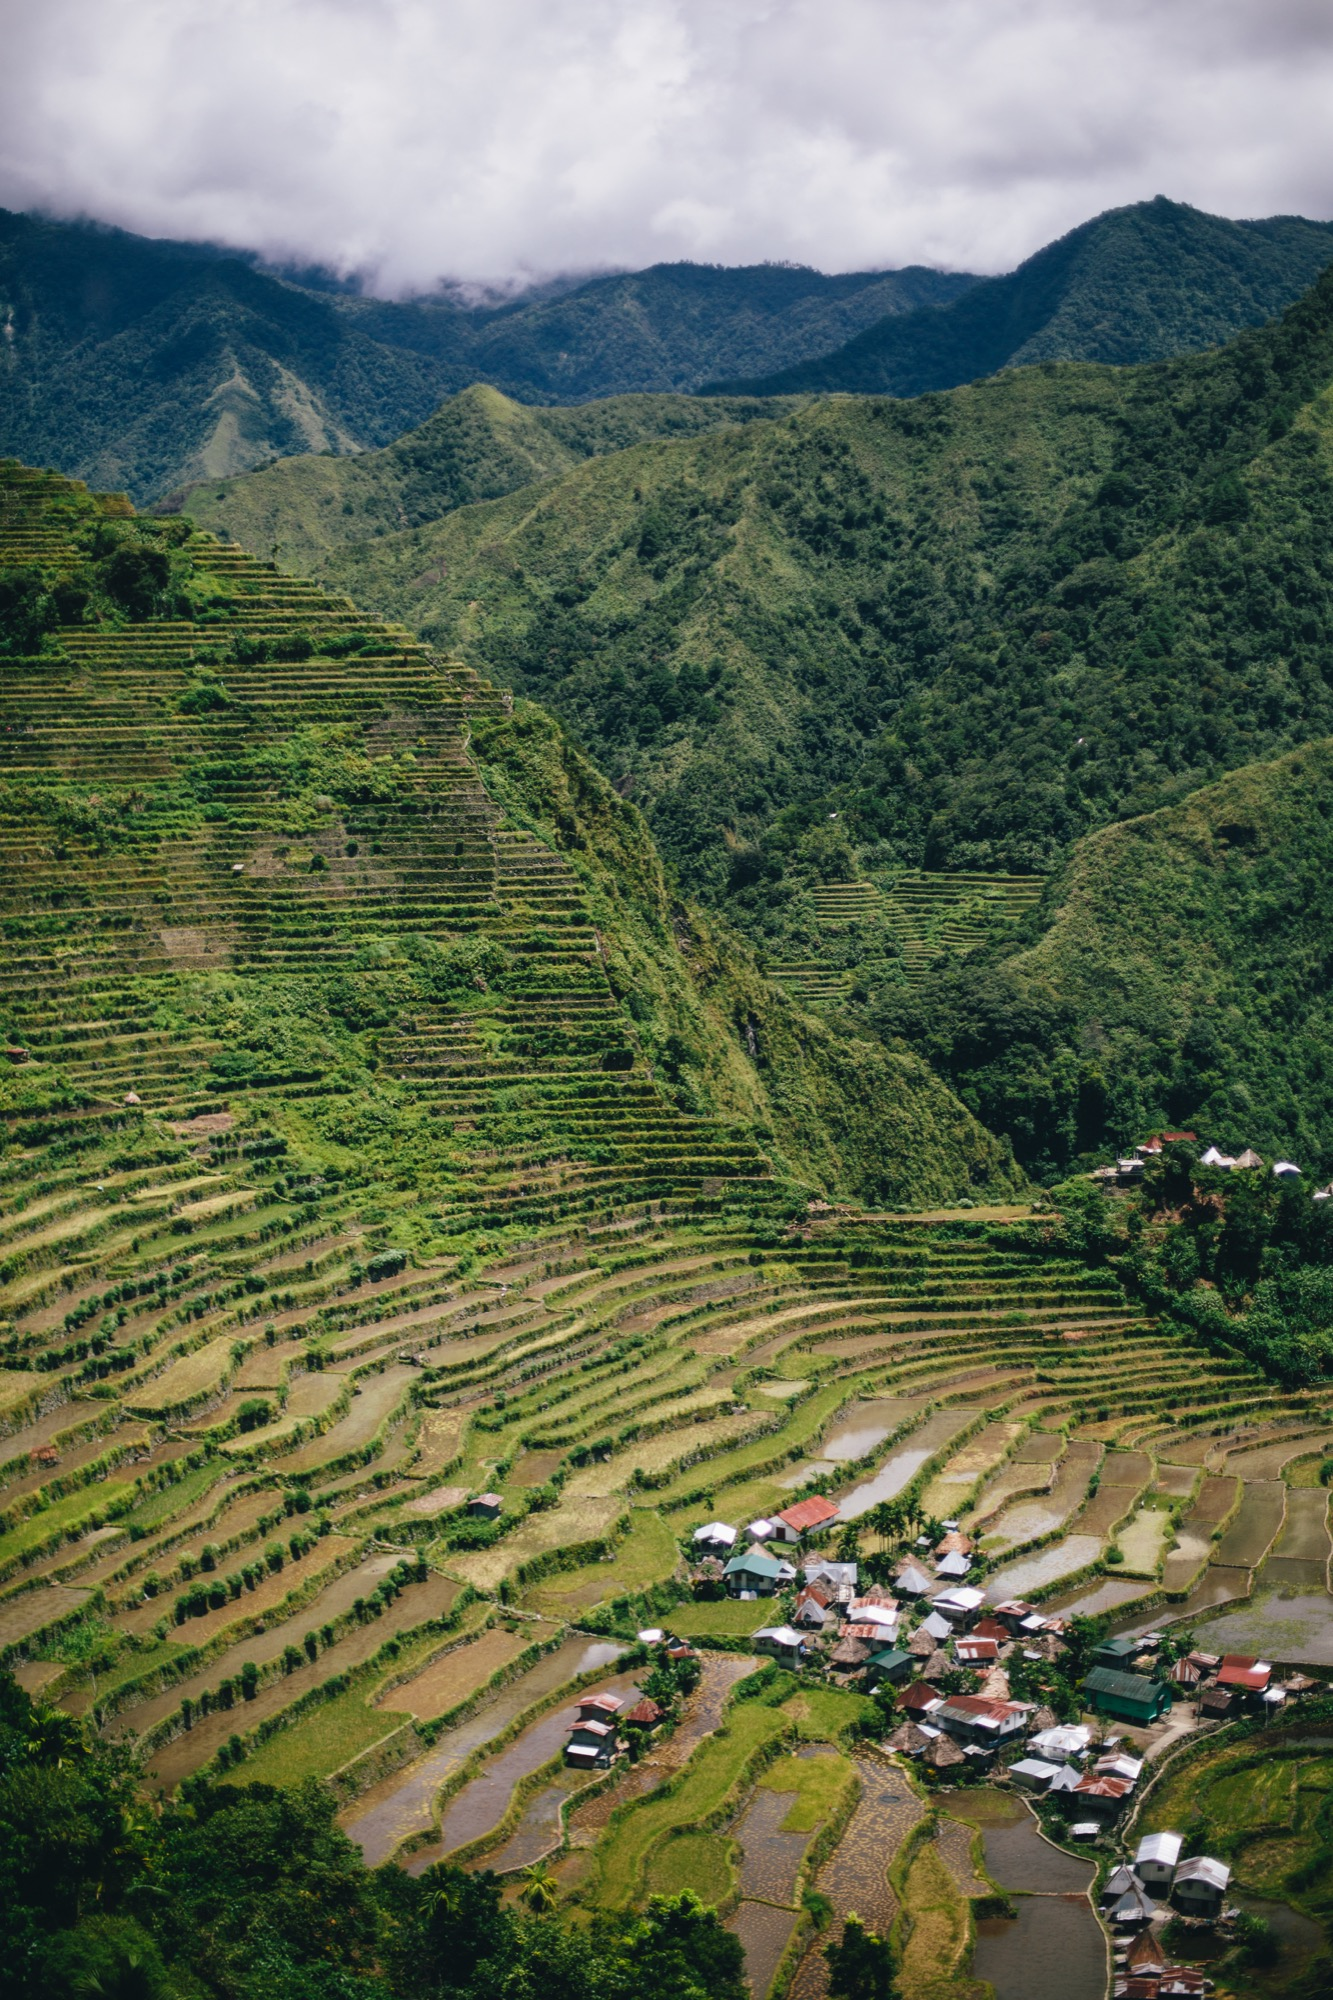 Banaue Rice Terraces, Philippines / Photo by Chimera Rene Singer